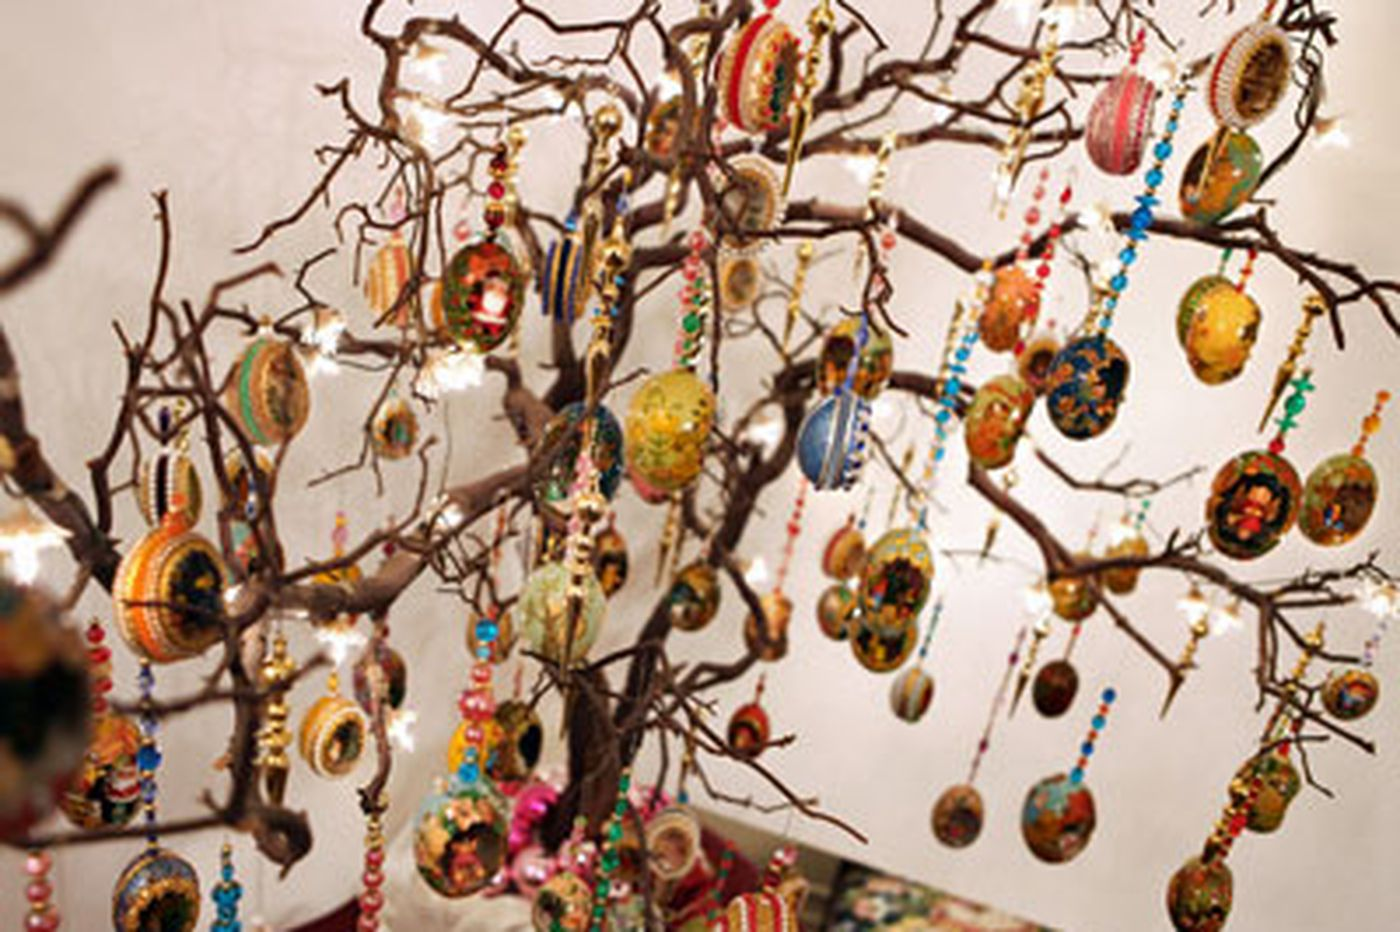 Handmade ornament collection was decades in the making